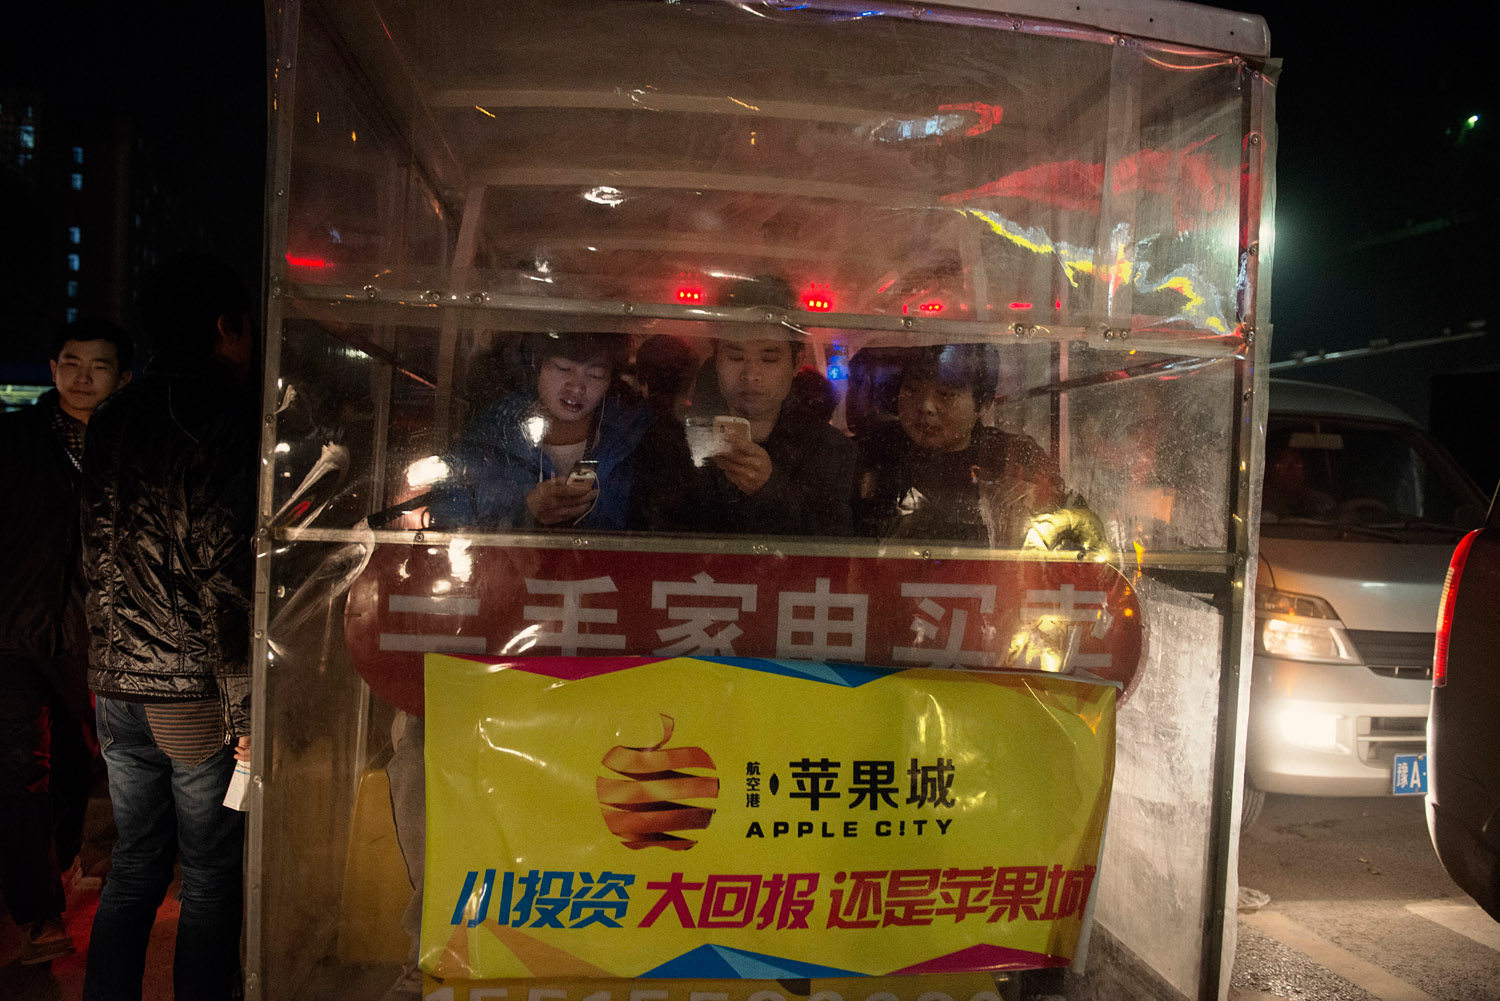 """Foxconn workers sitting in a cart taking them from the plant to the commercial/residential area of the factory town. On the cart a promotion for a housing project nicknamed """"Apple City""""."""